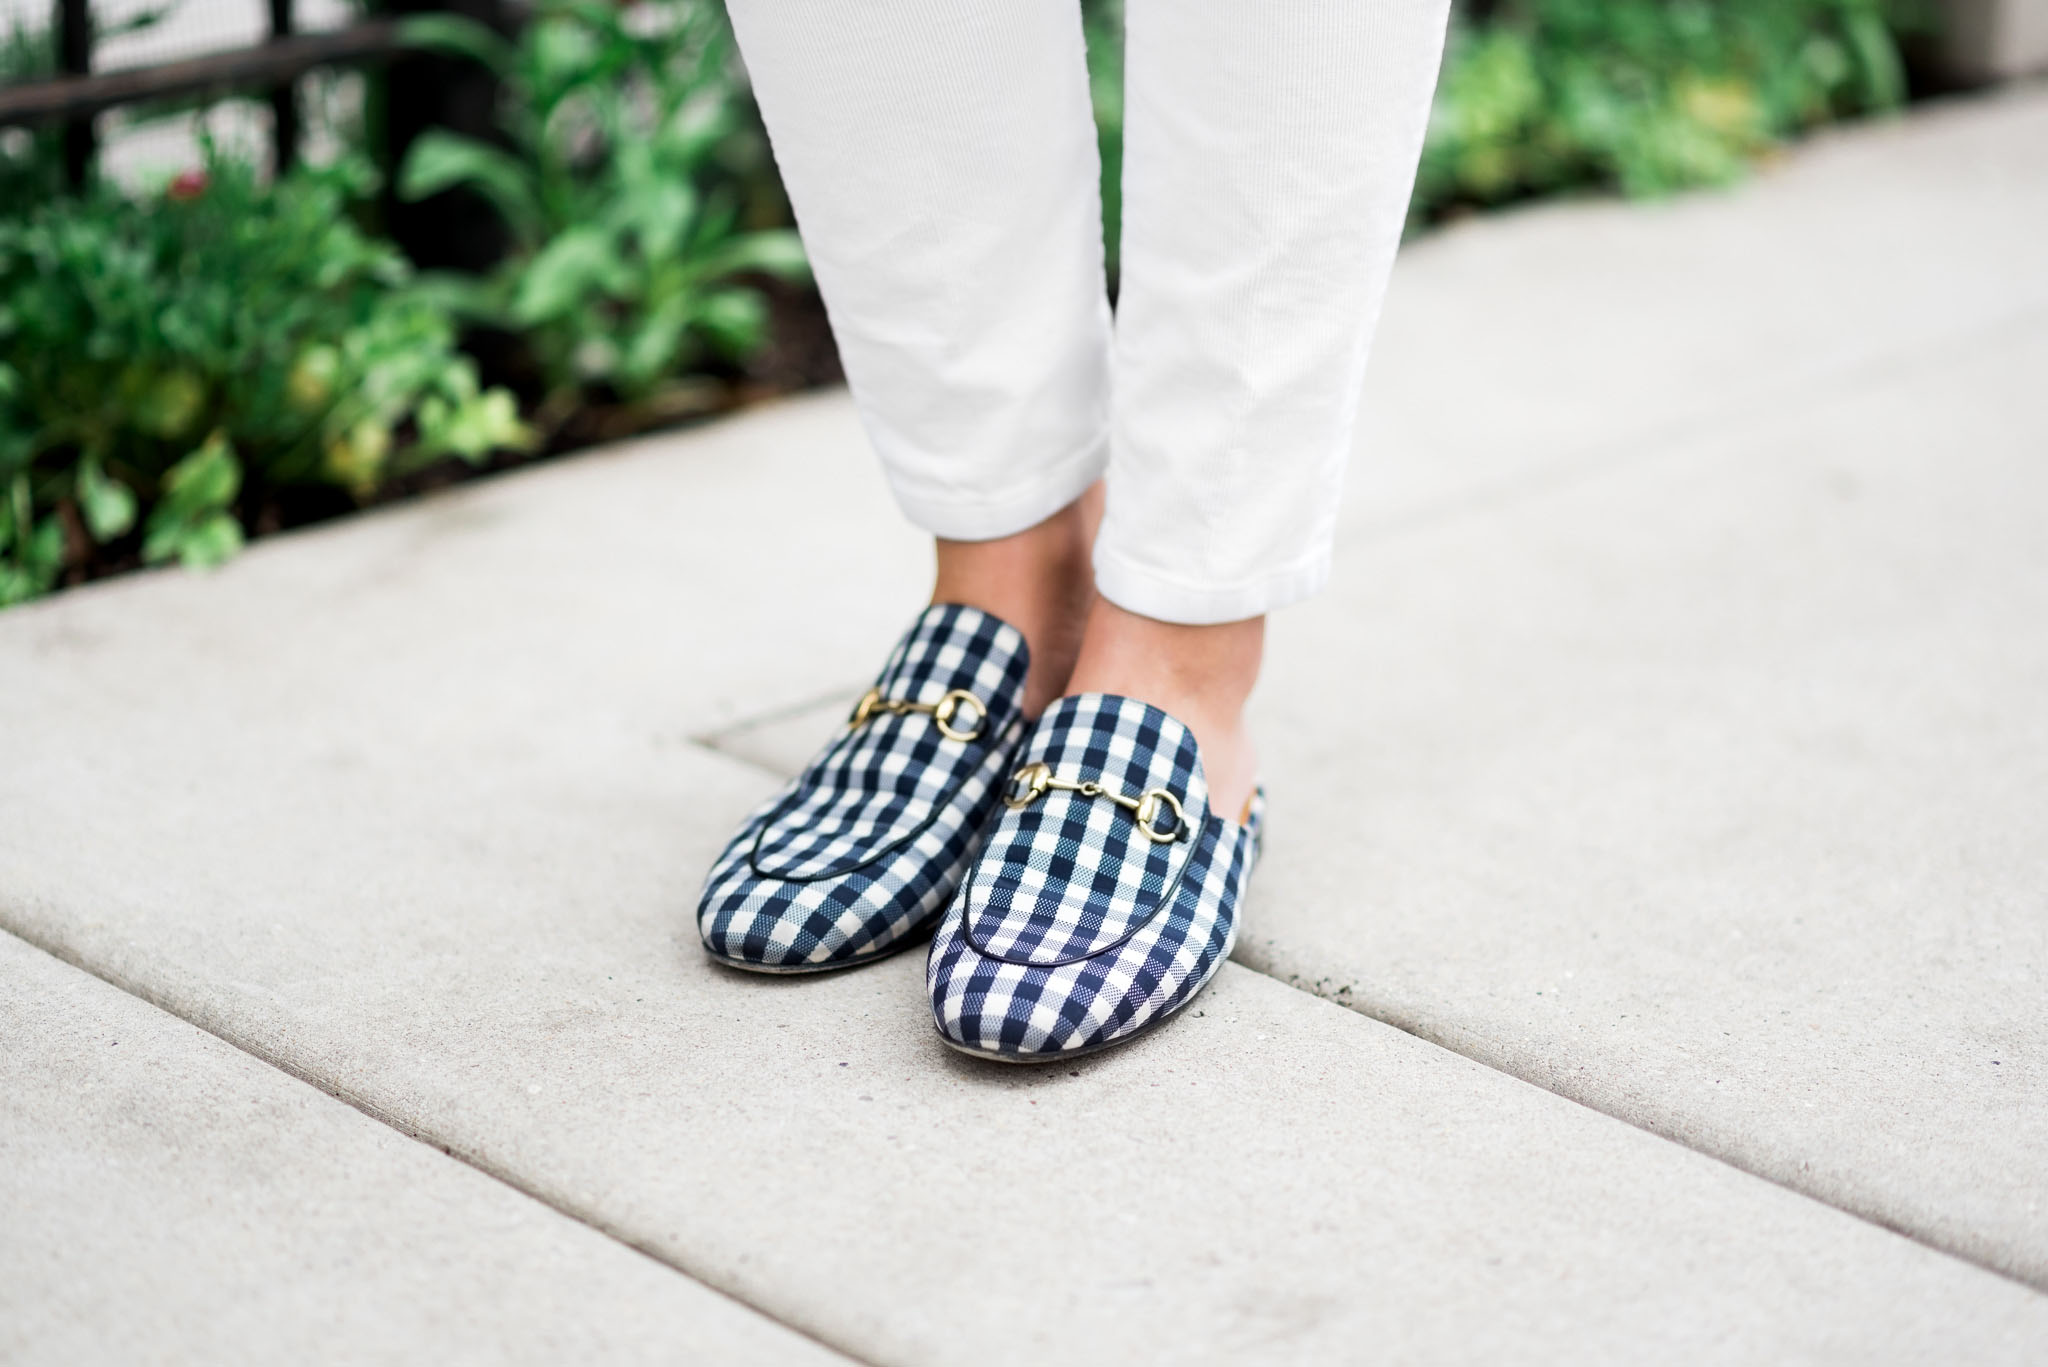 Bows & Sequins wearing a pair of navy gingham Gucci Princetown slip-on loafers.